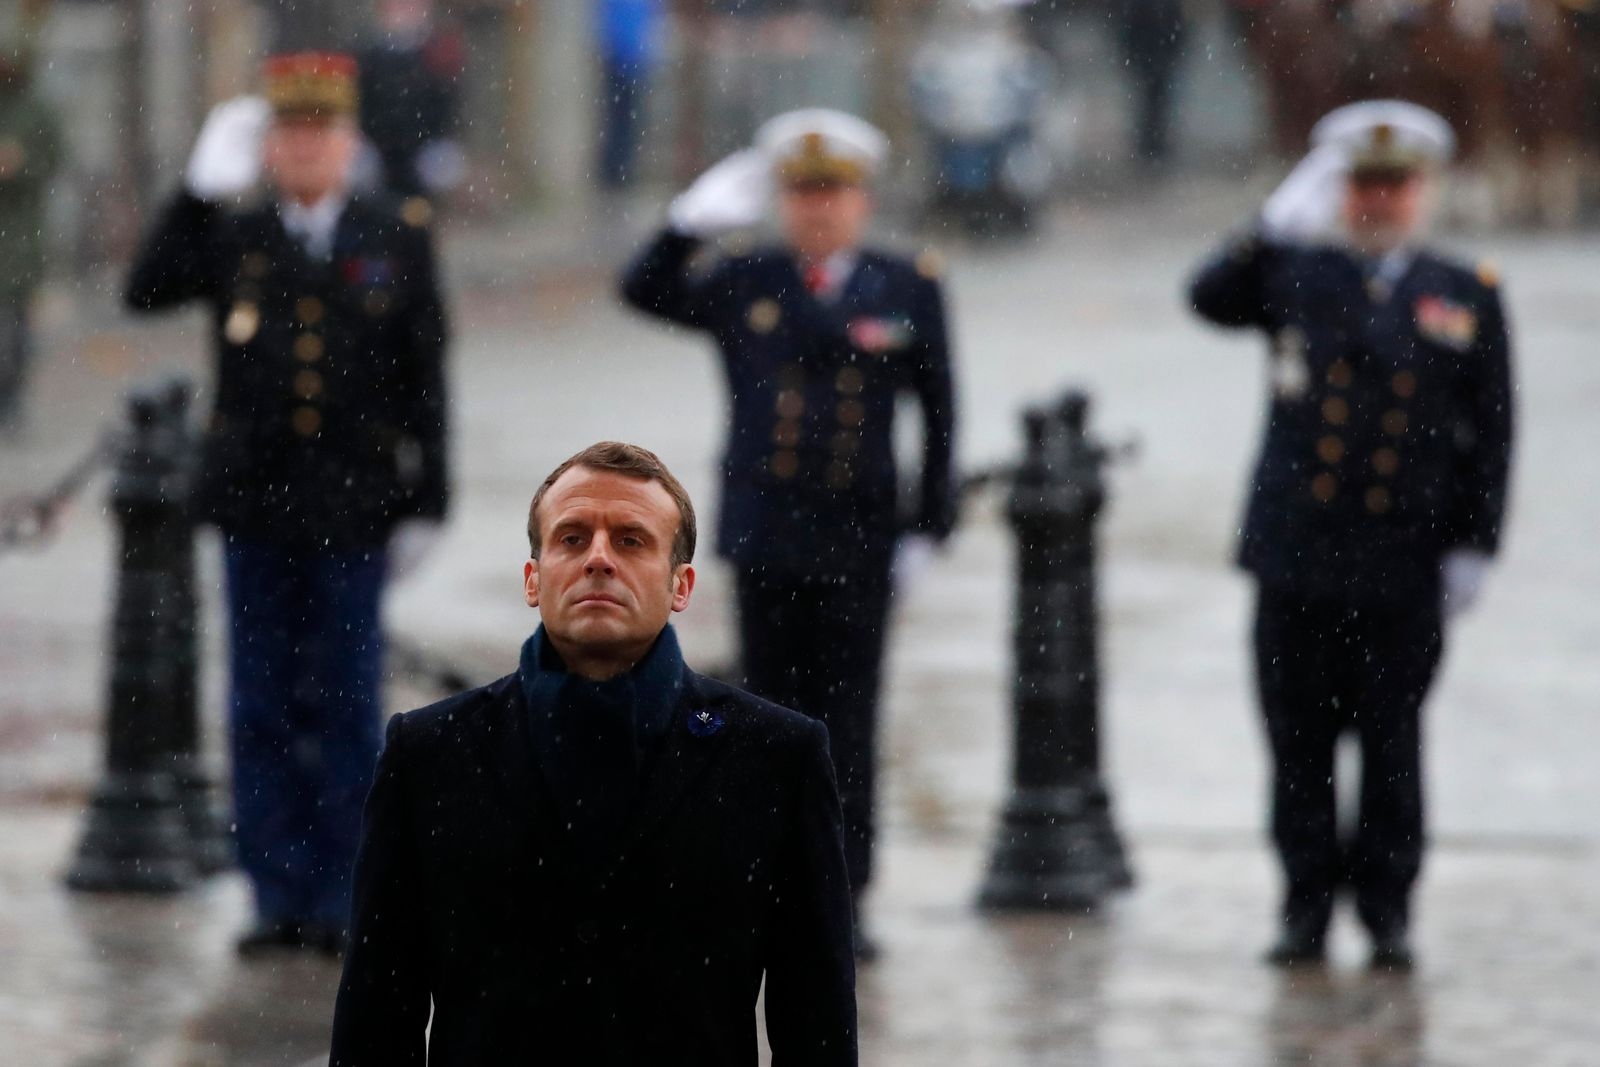 French President Emmanuel Macron stand at attention at the Arc de Triomphe during commemorations marking the 101st anniversary of the 1918 armistice, ending World War I, Monday Nov. 11, 2019 in Paris (AP Photo/Francois Mori, Pool)